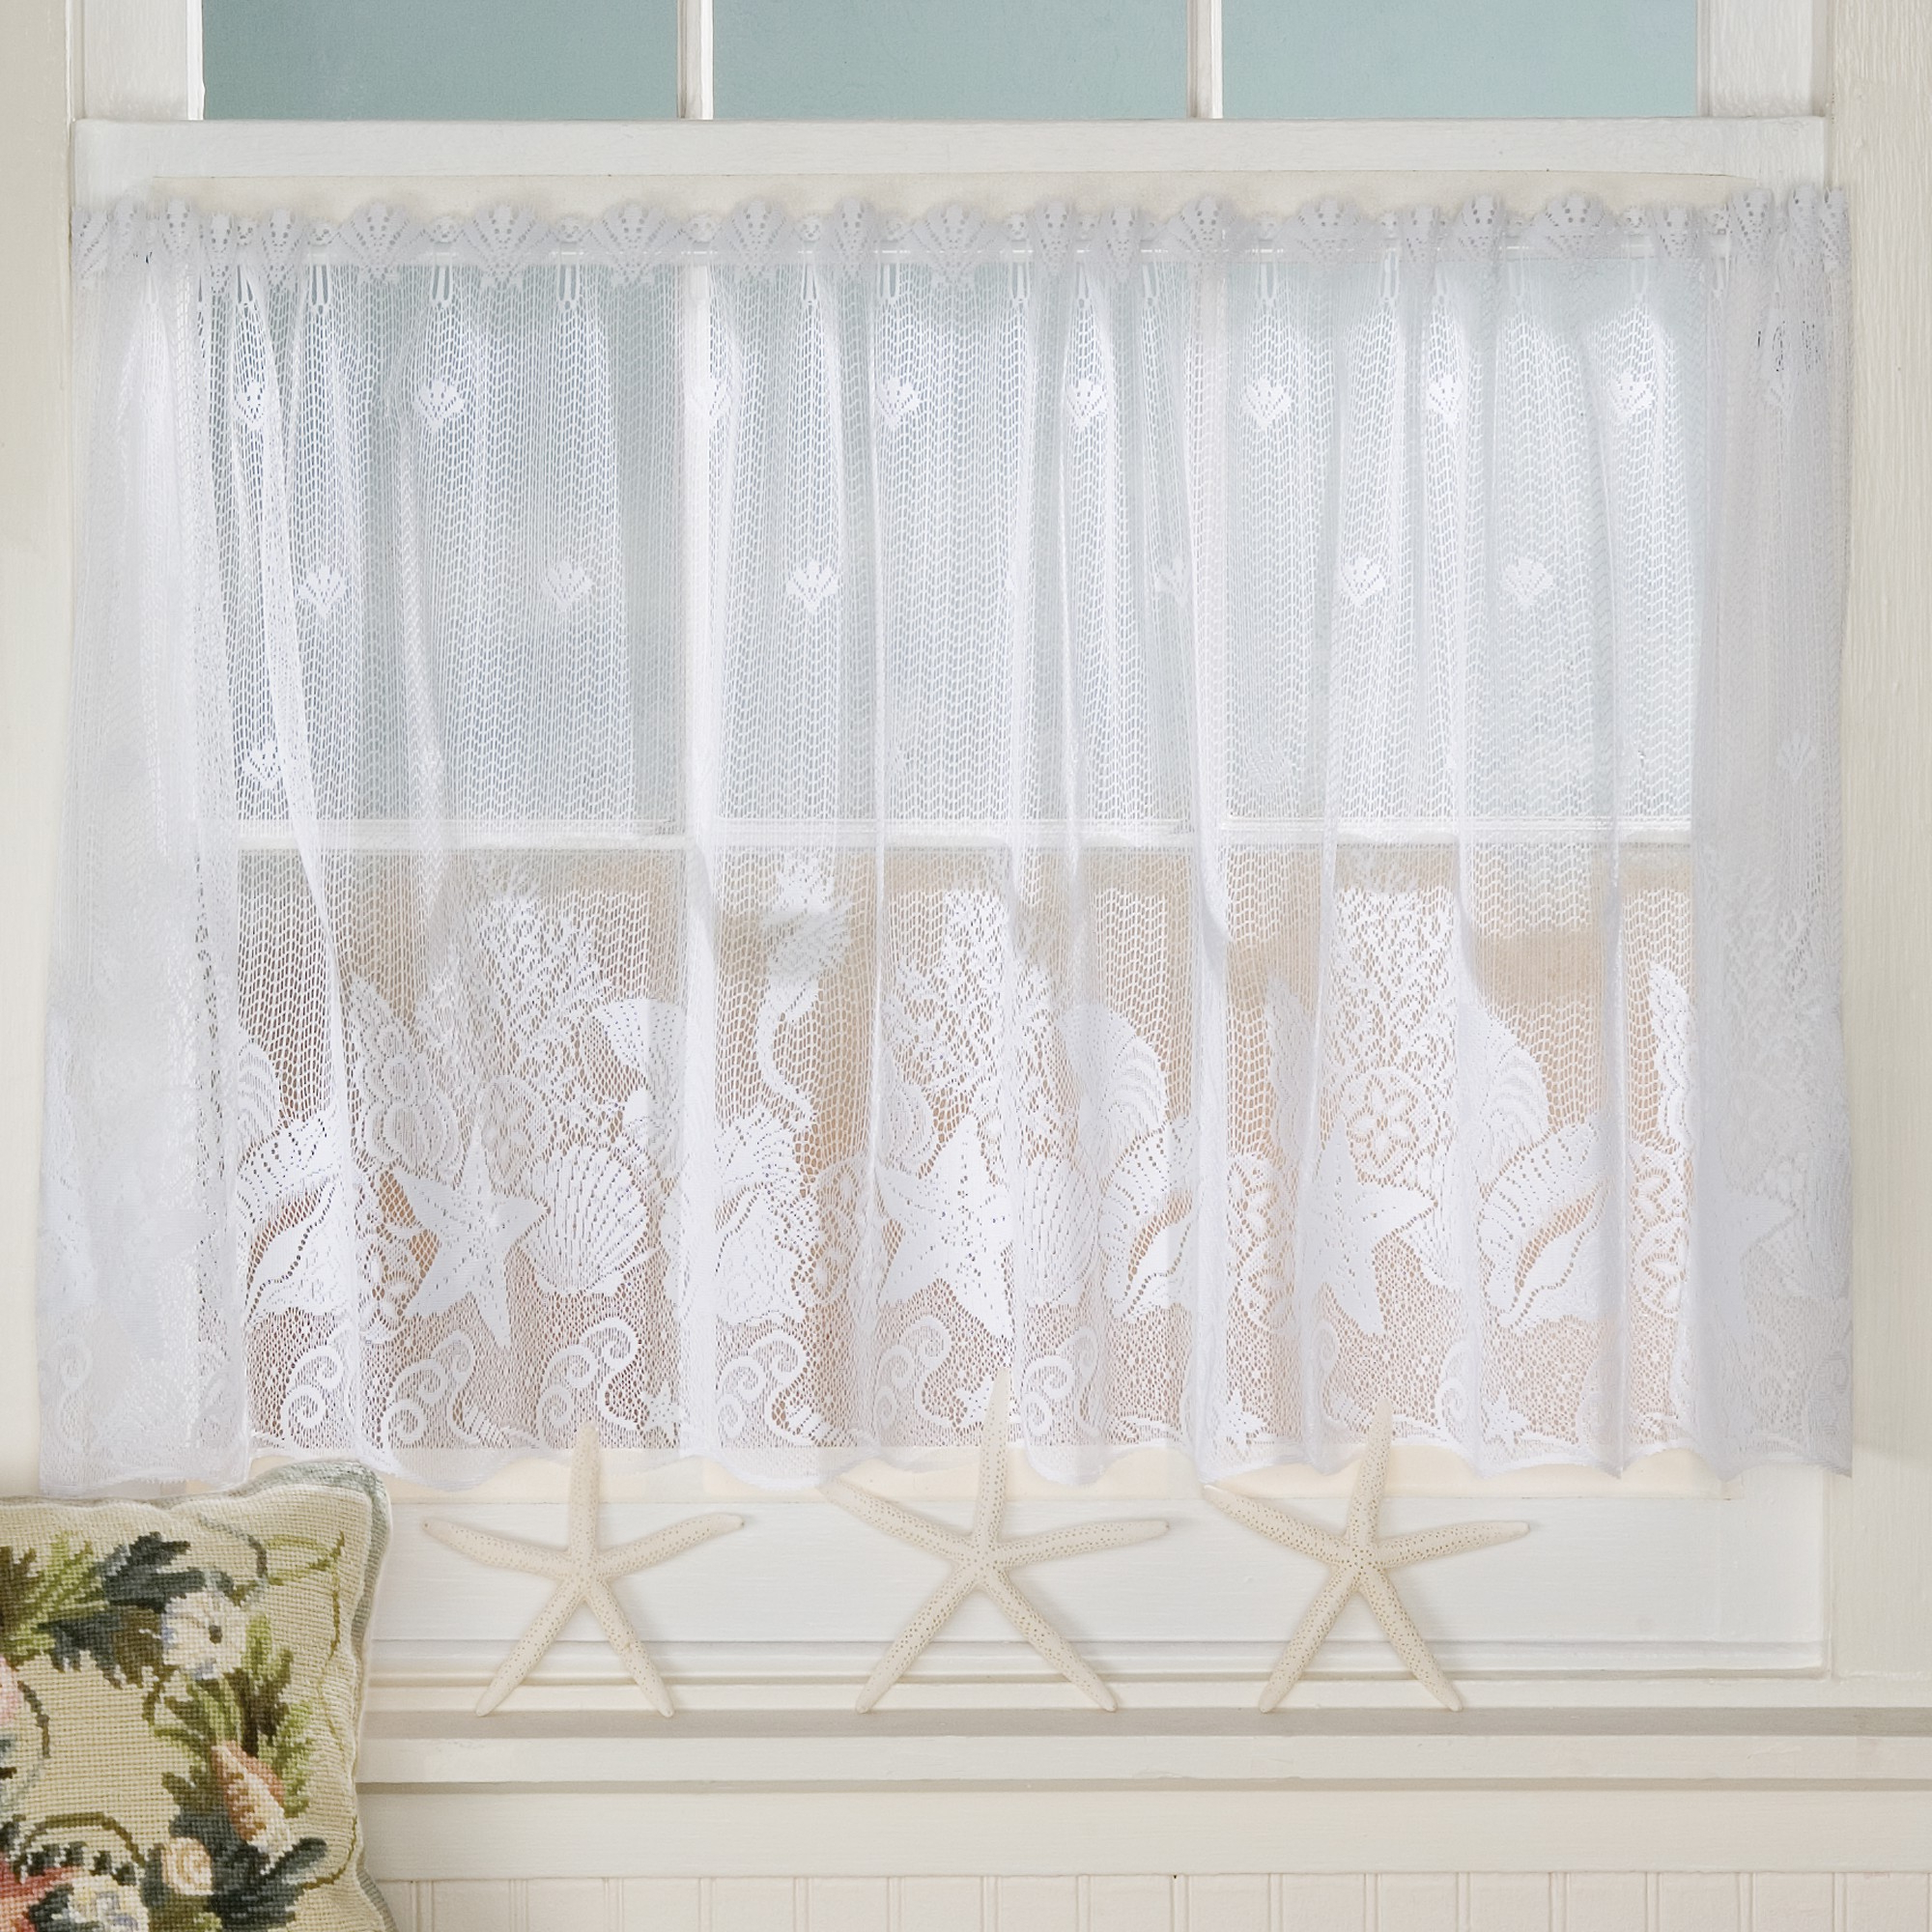 Sturbridge Yankee Workshop Intended For Vintage Sea Shore All Over Printed Window Curtains (View 18 of 20)